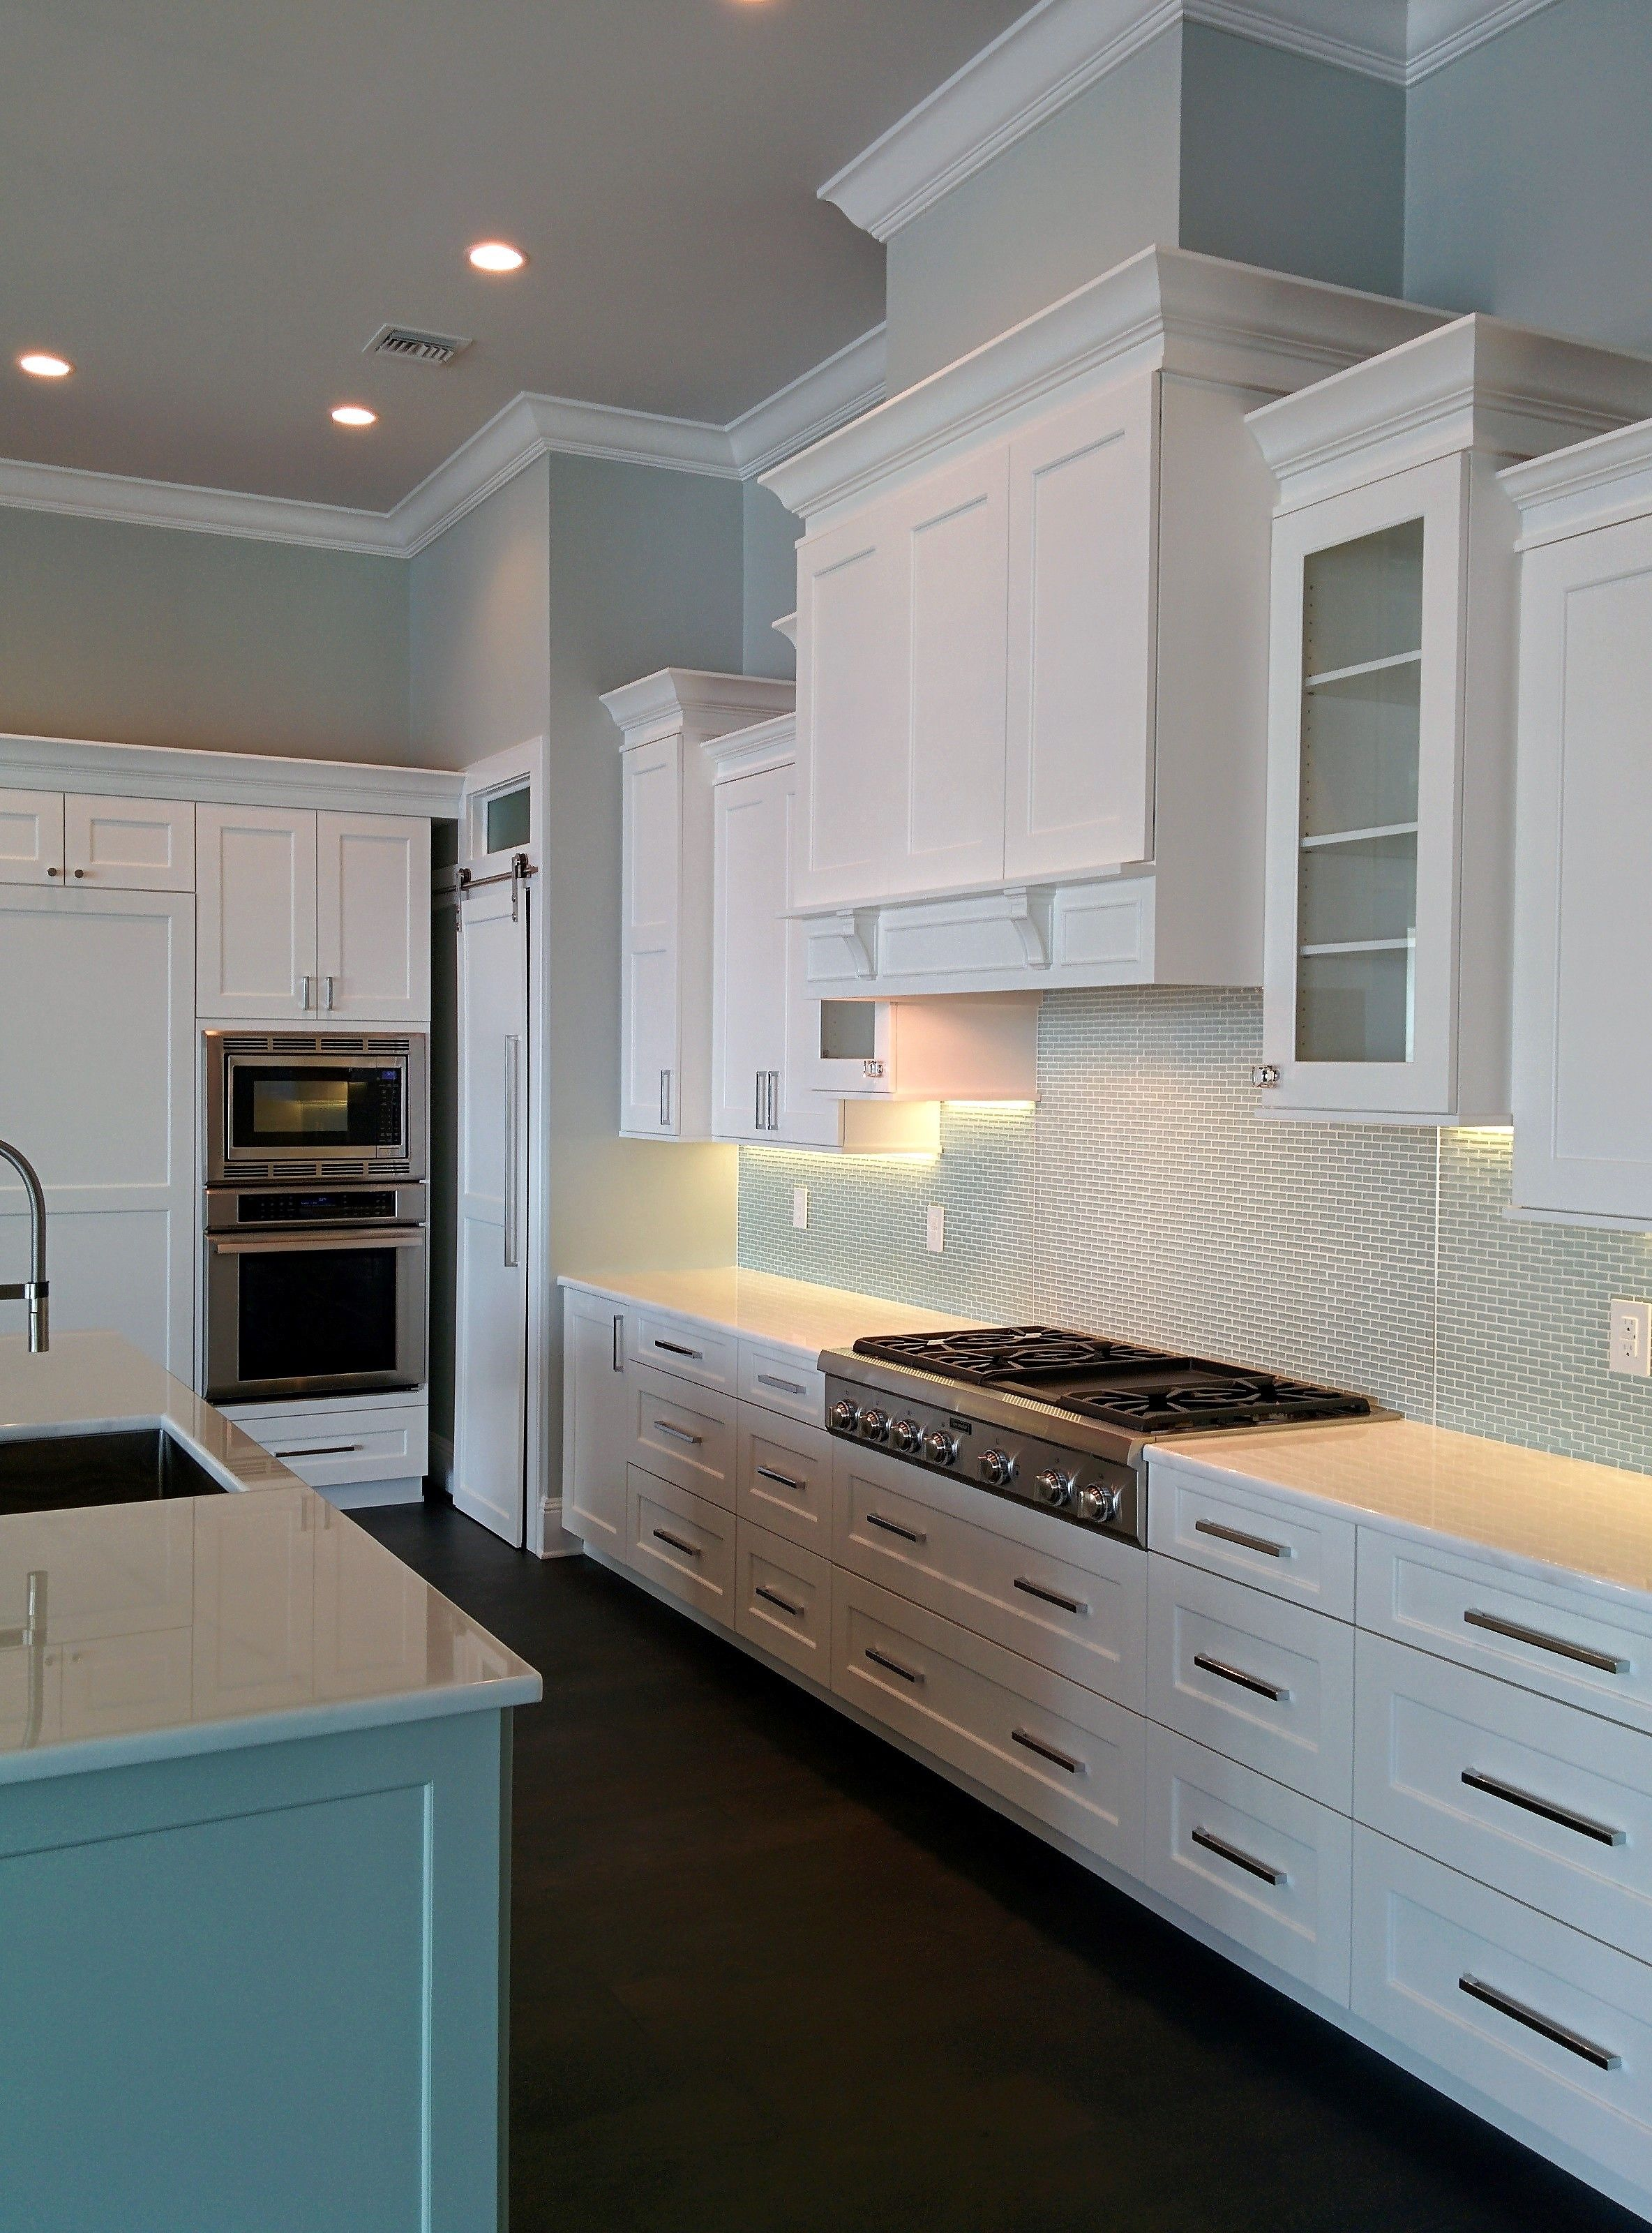 This Beautiful Classic Kitchen Was Designed By Monarch Kitchen And Bath Design Monarchkitchenandbathdesi Classic Kitchens Kitchen And Bath Design Bath Design